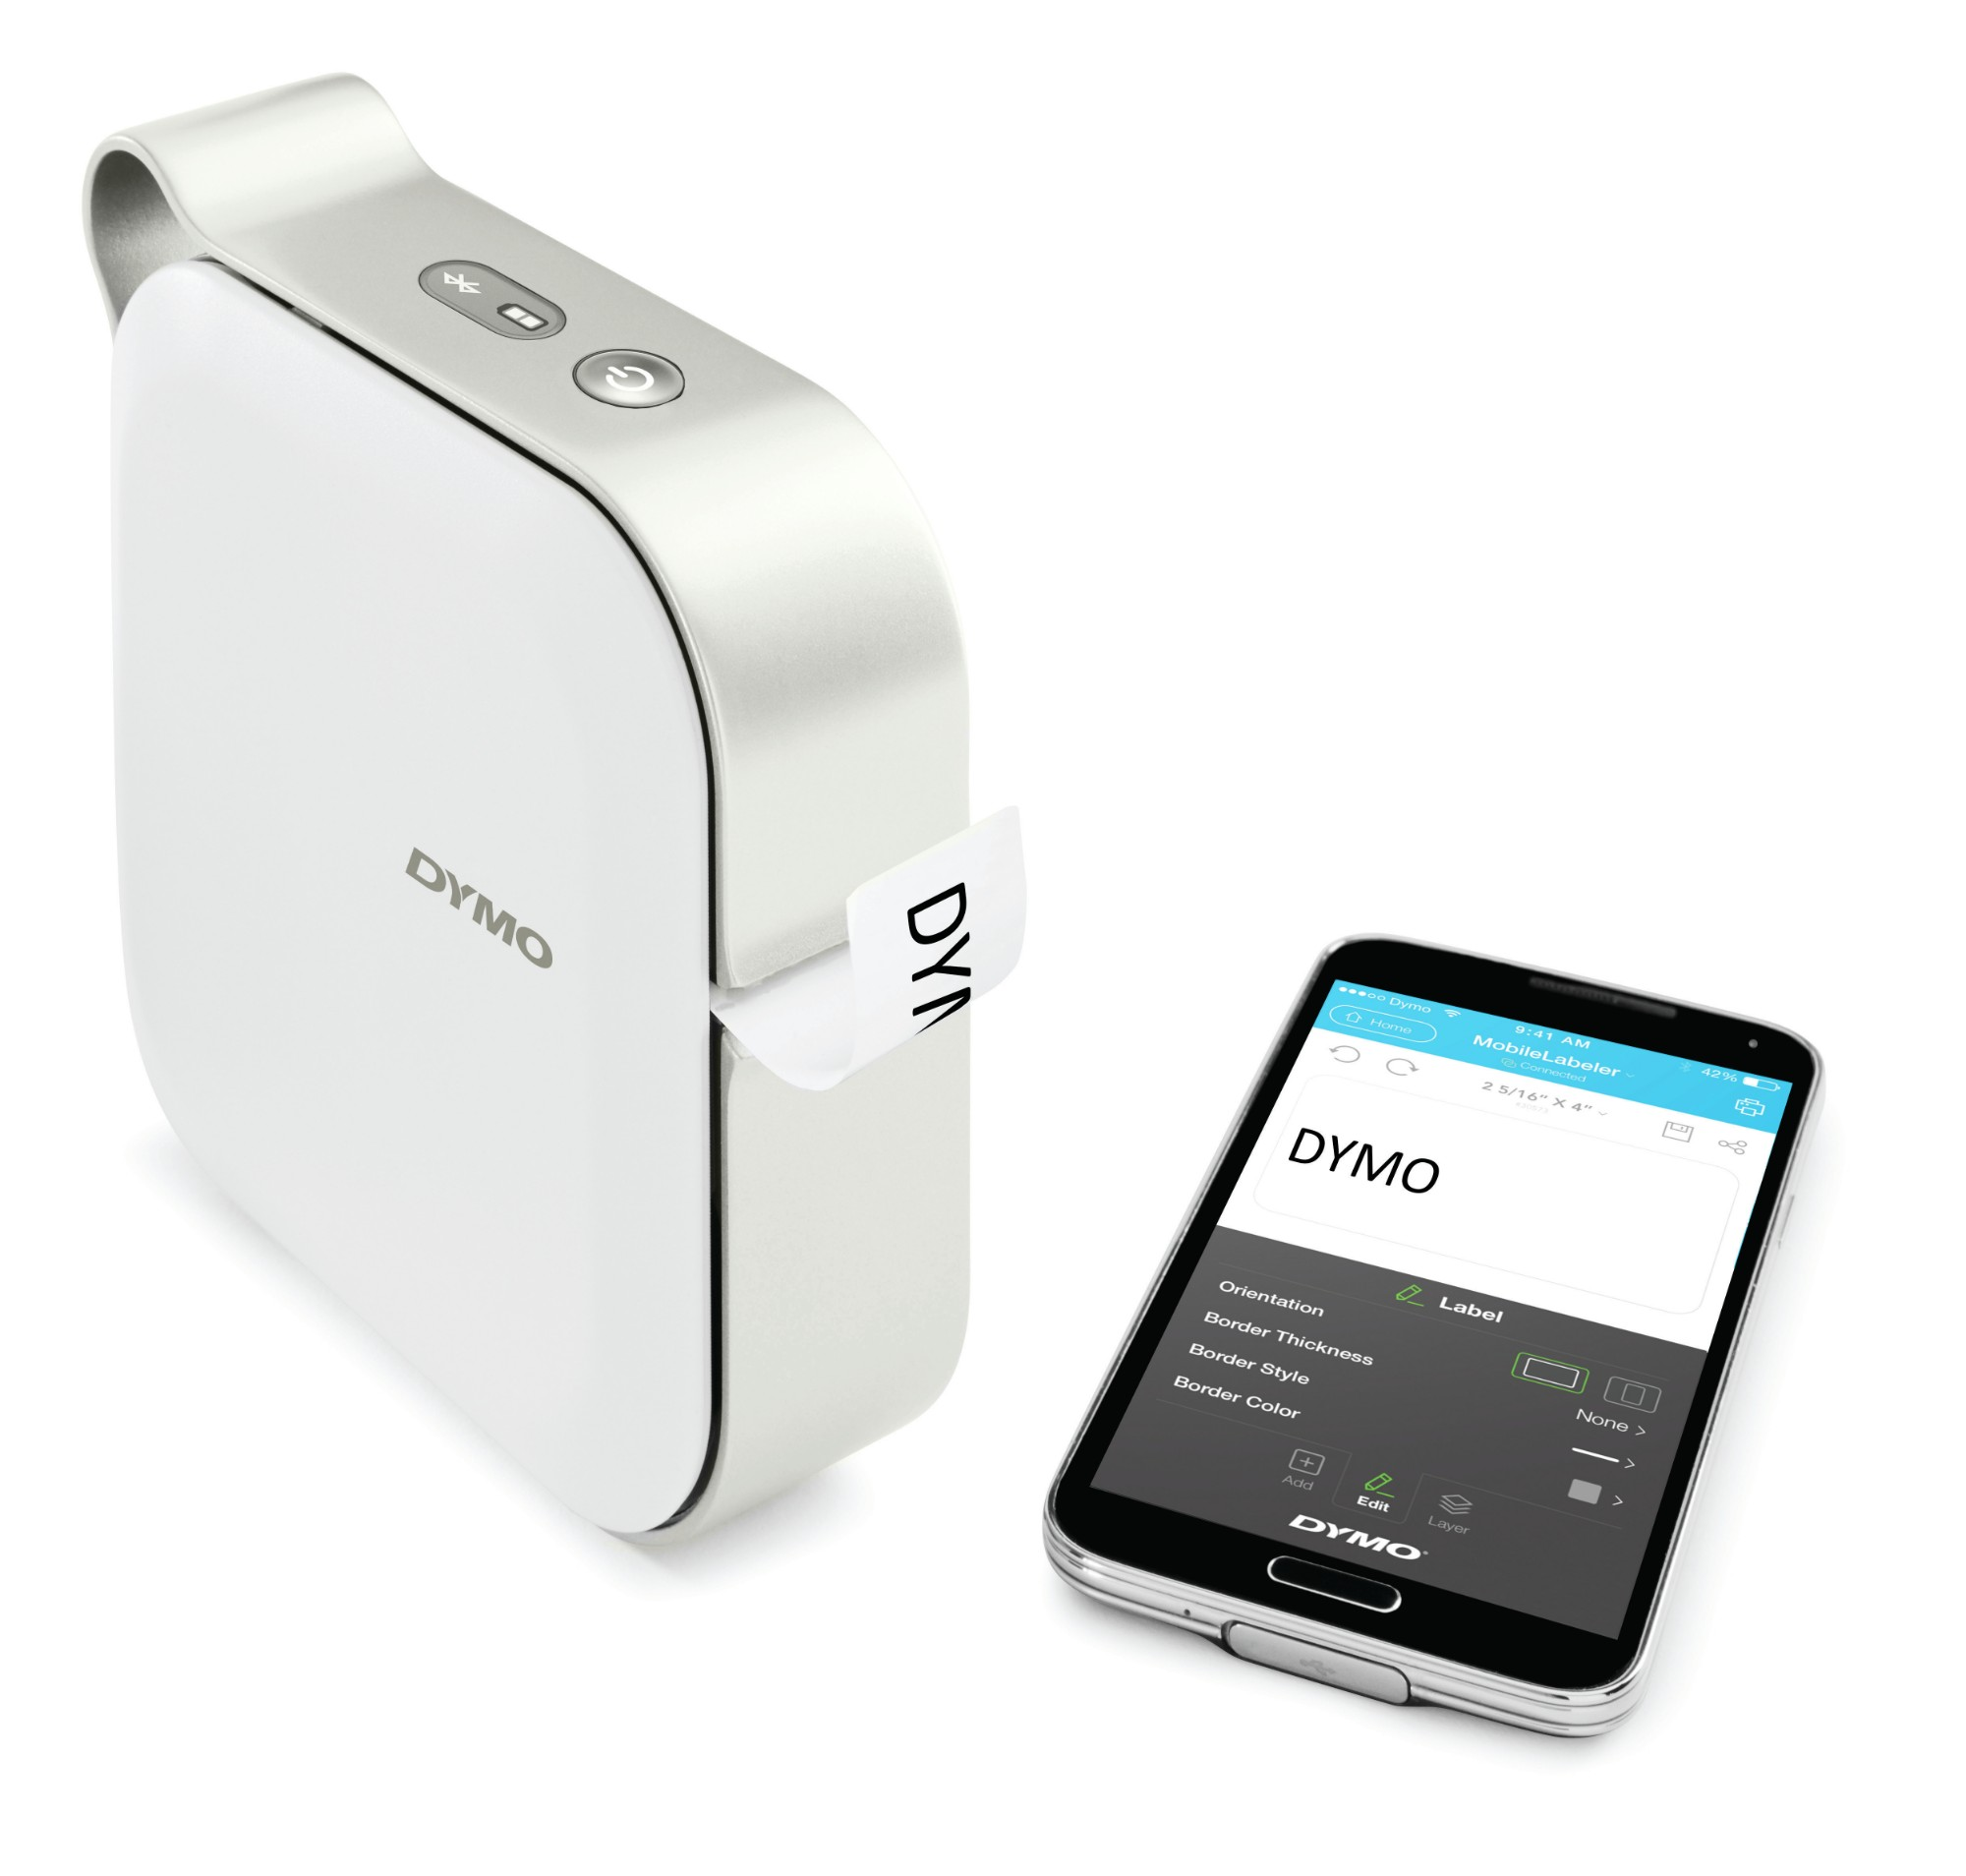 DYMO MobileLabeler - Label printer - thermal transfer - Roll (2.4 cm) - 300 dpi - USB, Bluetooth 2.1